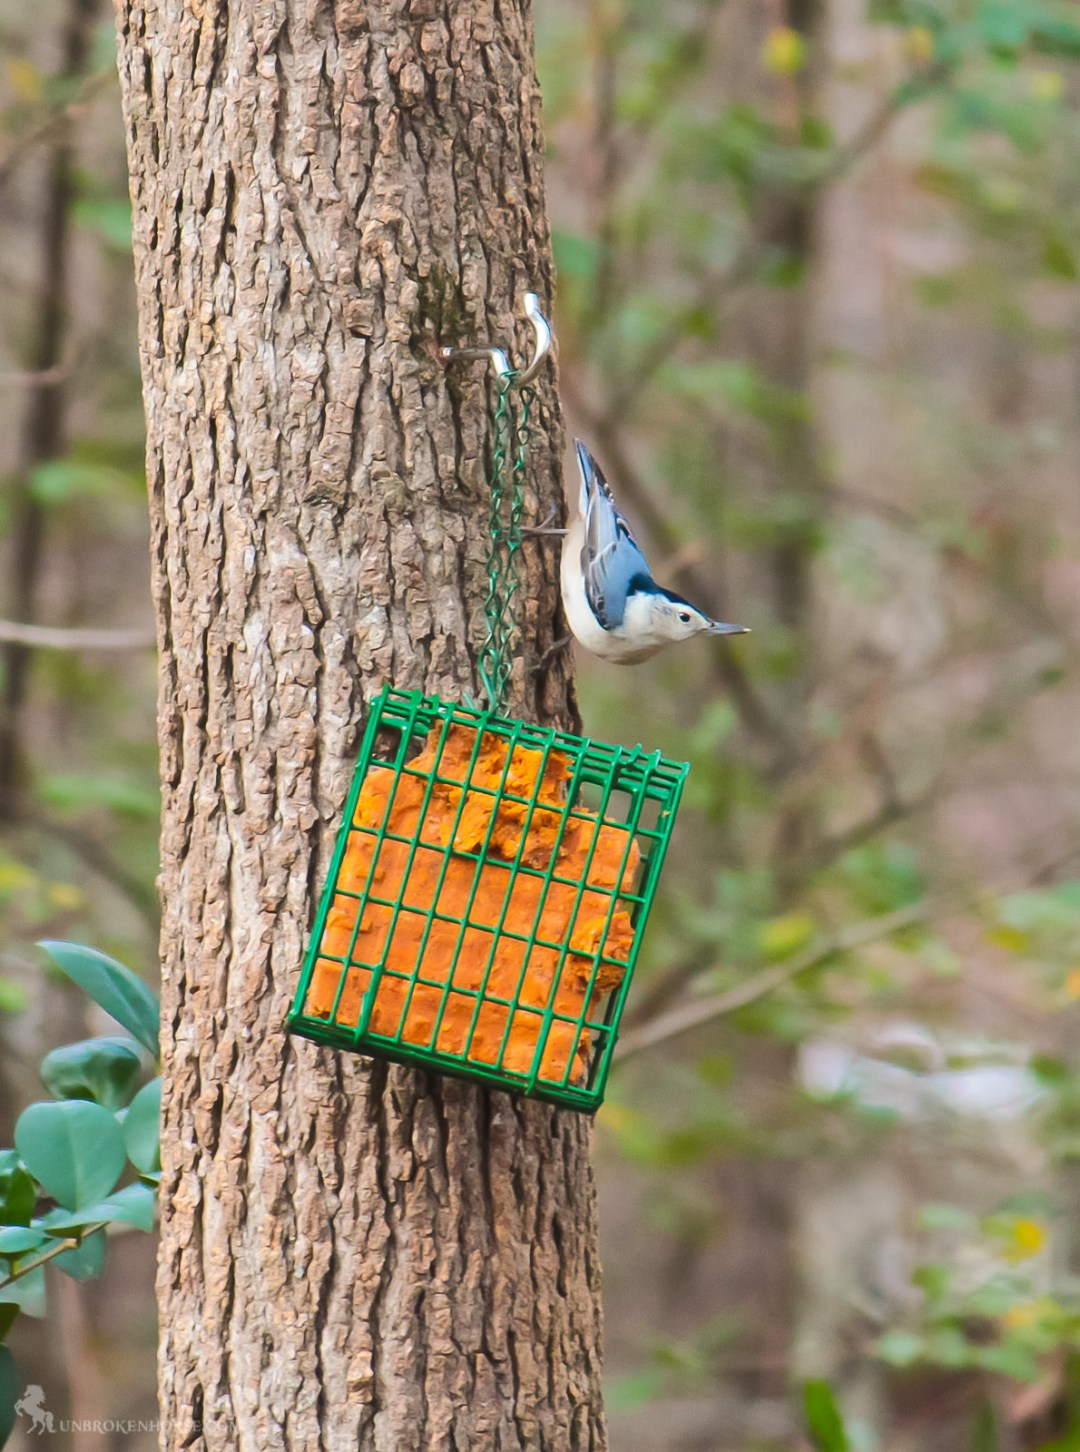 """A common feeder bird with clean black, gray, and white markings, White-breasted Nuthatches are active, agile little birds with an appetite for insects and large, meaty seeds. They get their common name from their habit of jamming large nuts and acorns into tree bark, then whacking them with their sharp bill to """"hatch"""" out the seed from the inside. White-breasted Nuthatches may be small but their voices are loud, and often their insistent nasal yammering will lead you right to them."""